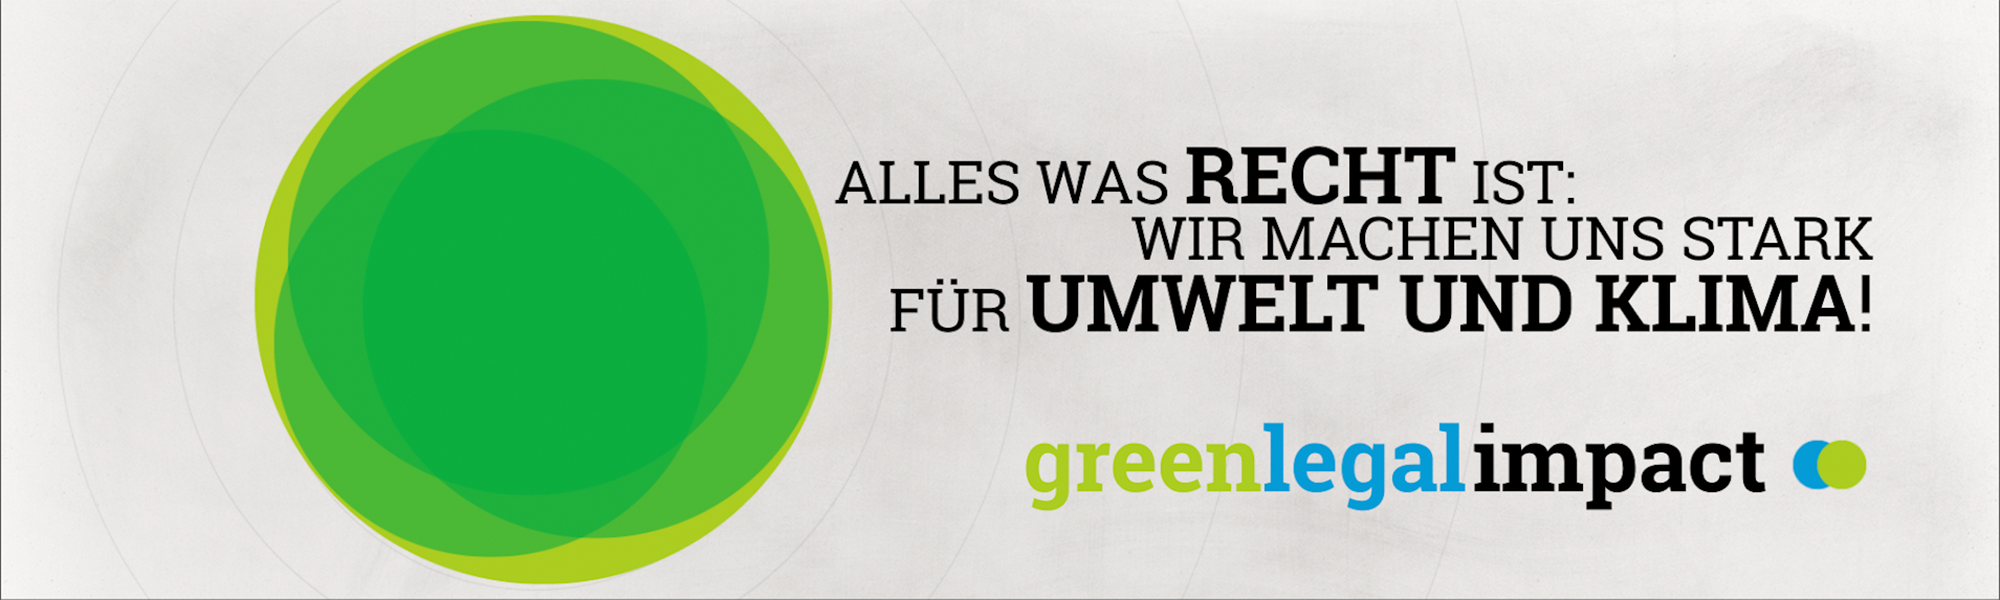 Green Legal Impact - Slider Standbild